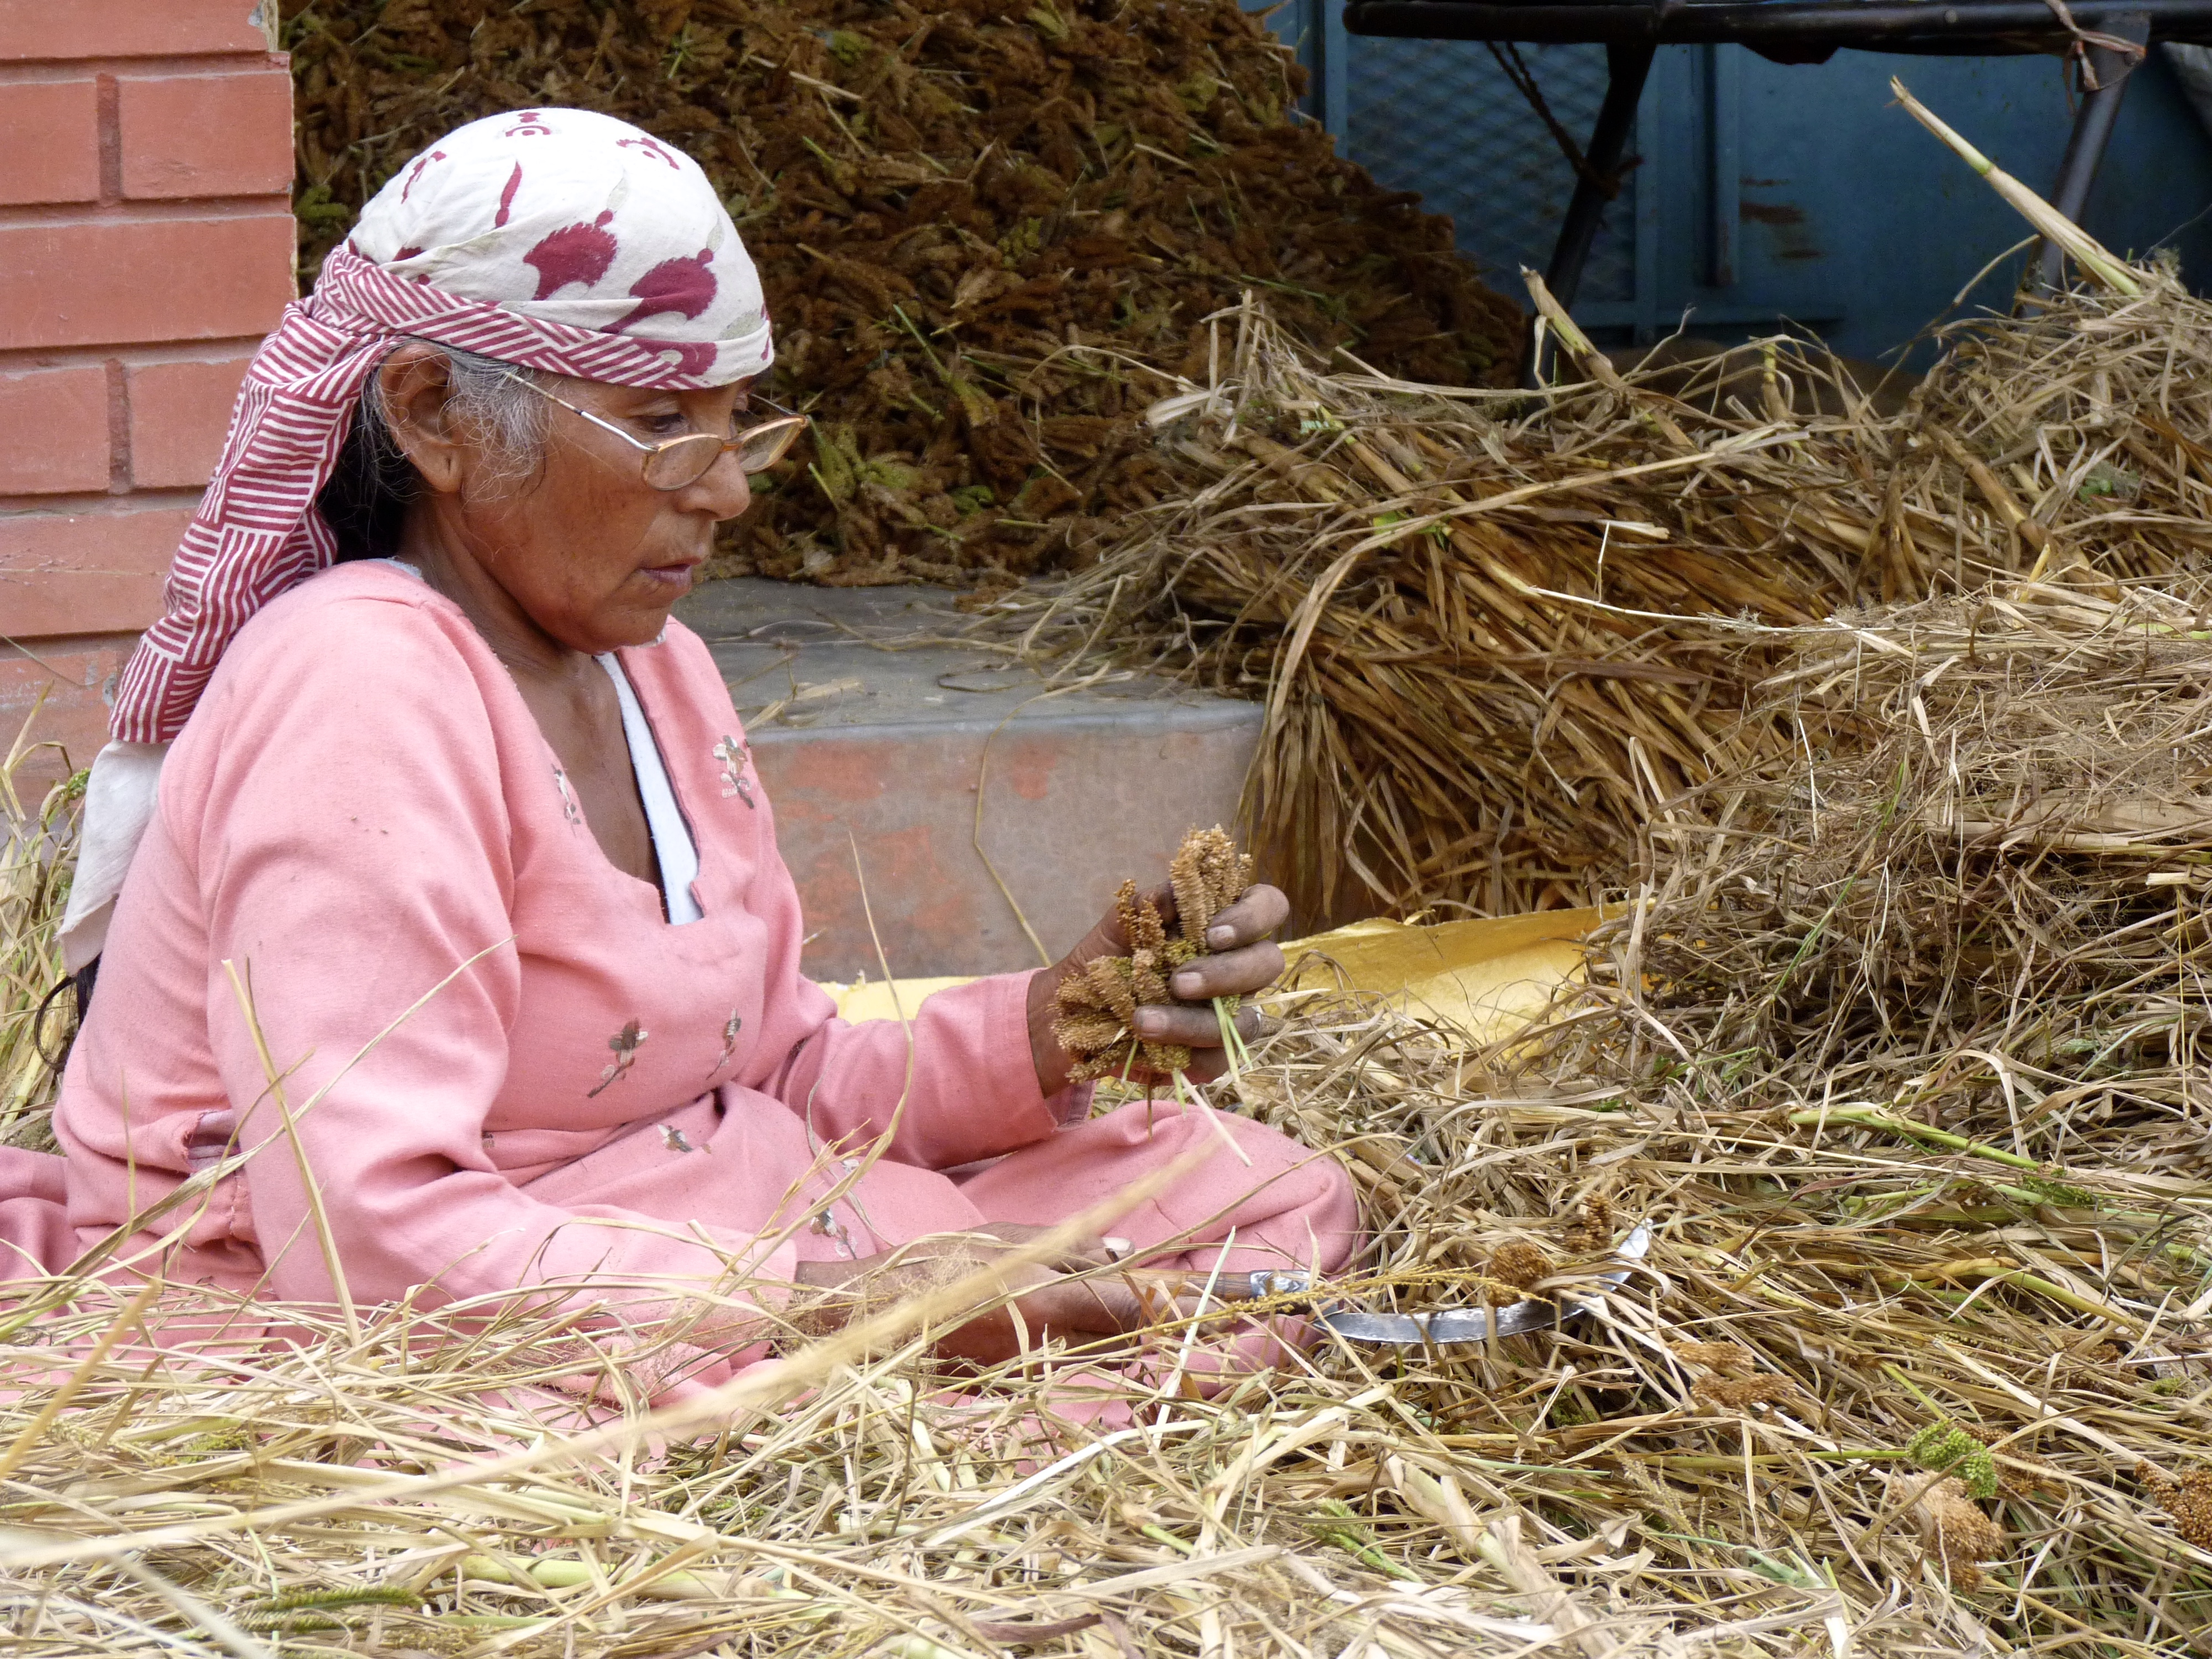 """The woman known as the """"seed sister"""" at Dr. Vandana Shiva's agroecological farm in Dehradun, India, where organizers are cultivating hundreds of traditional varieties of India's """"9 sacred grains"""". Photo Credit - Trina Moyles"""